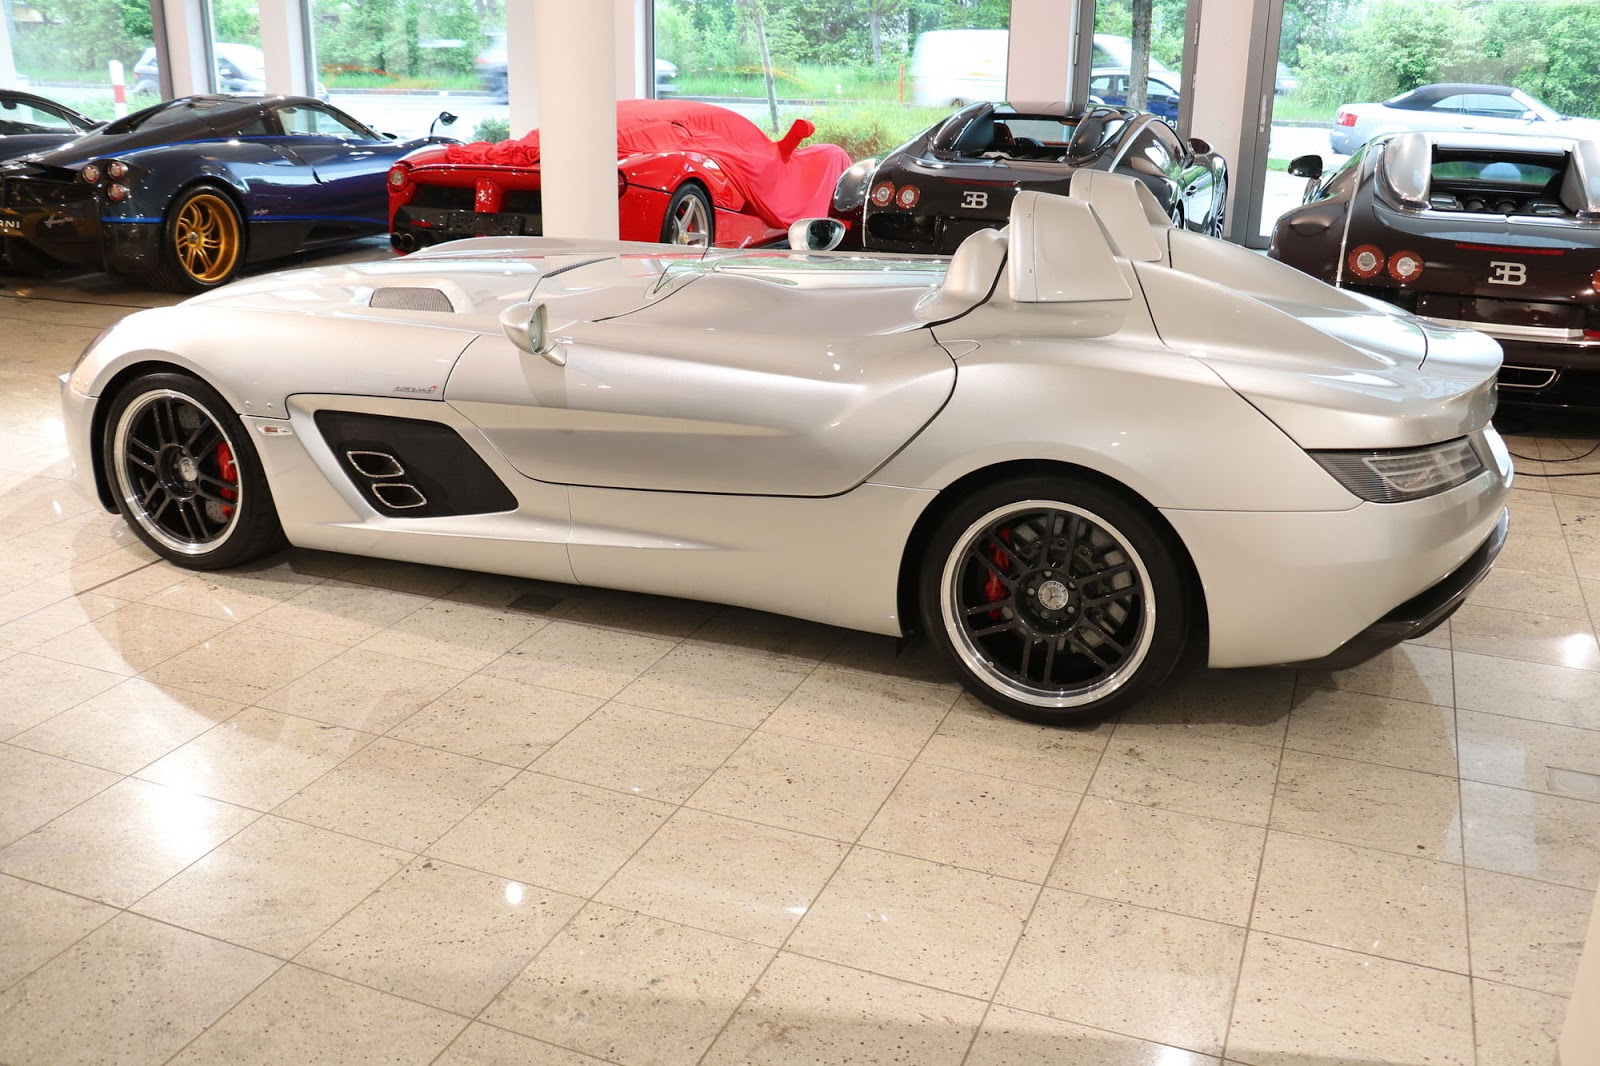 Mercedes benz slr stirling moss for sale in germany for Mercedes benz slr